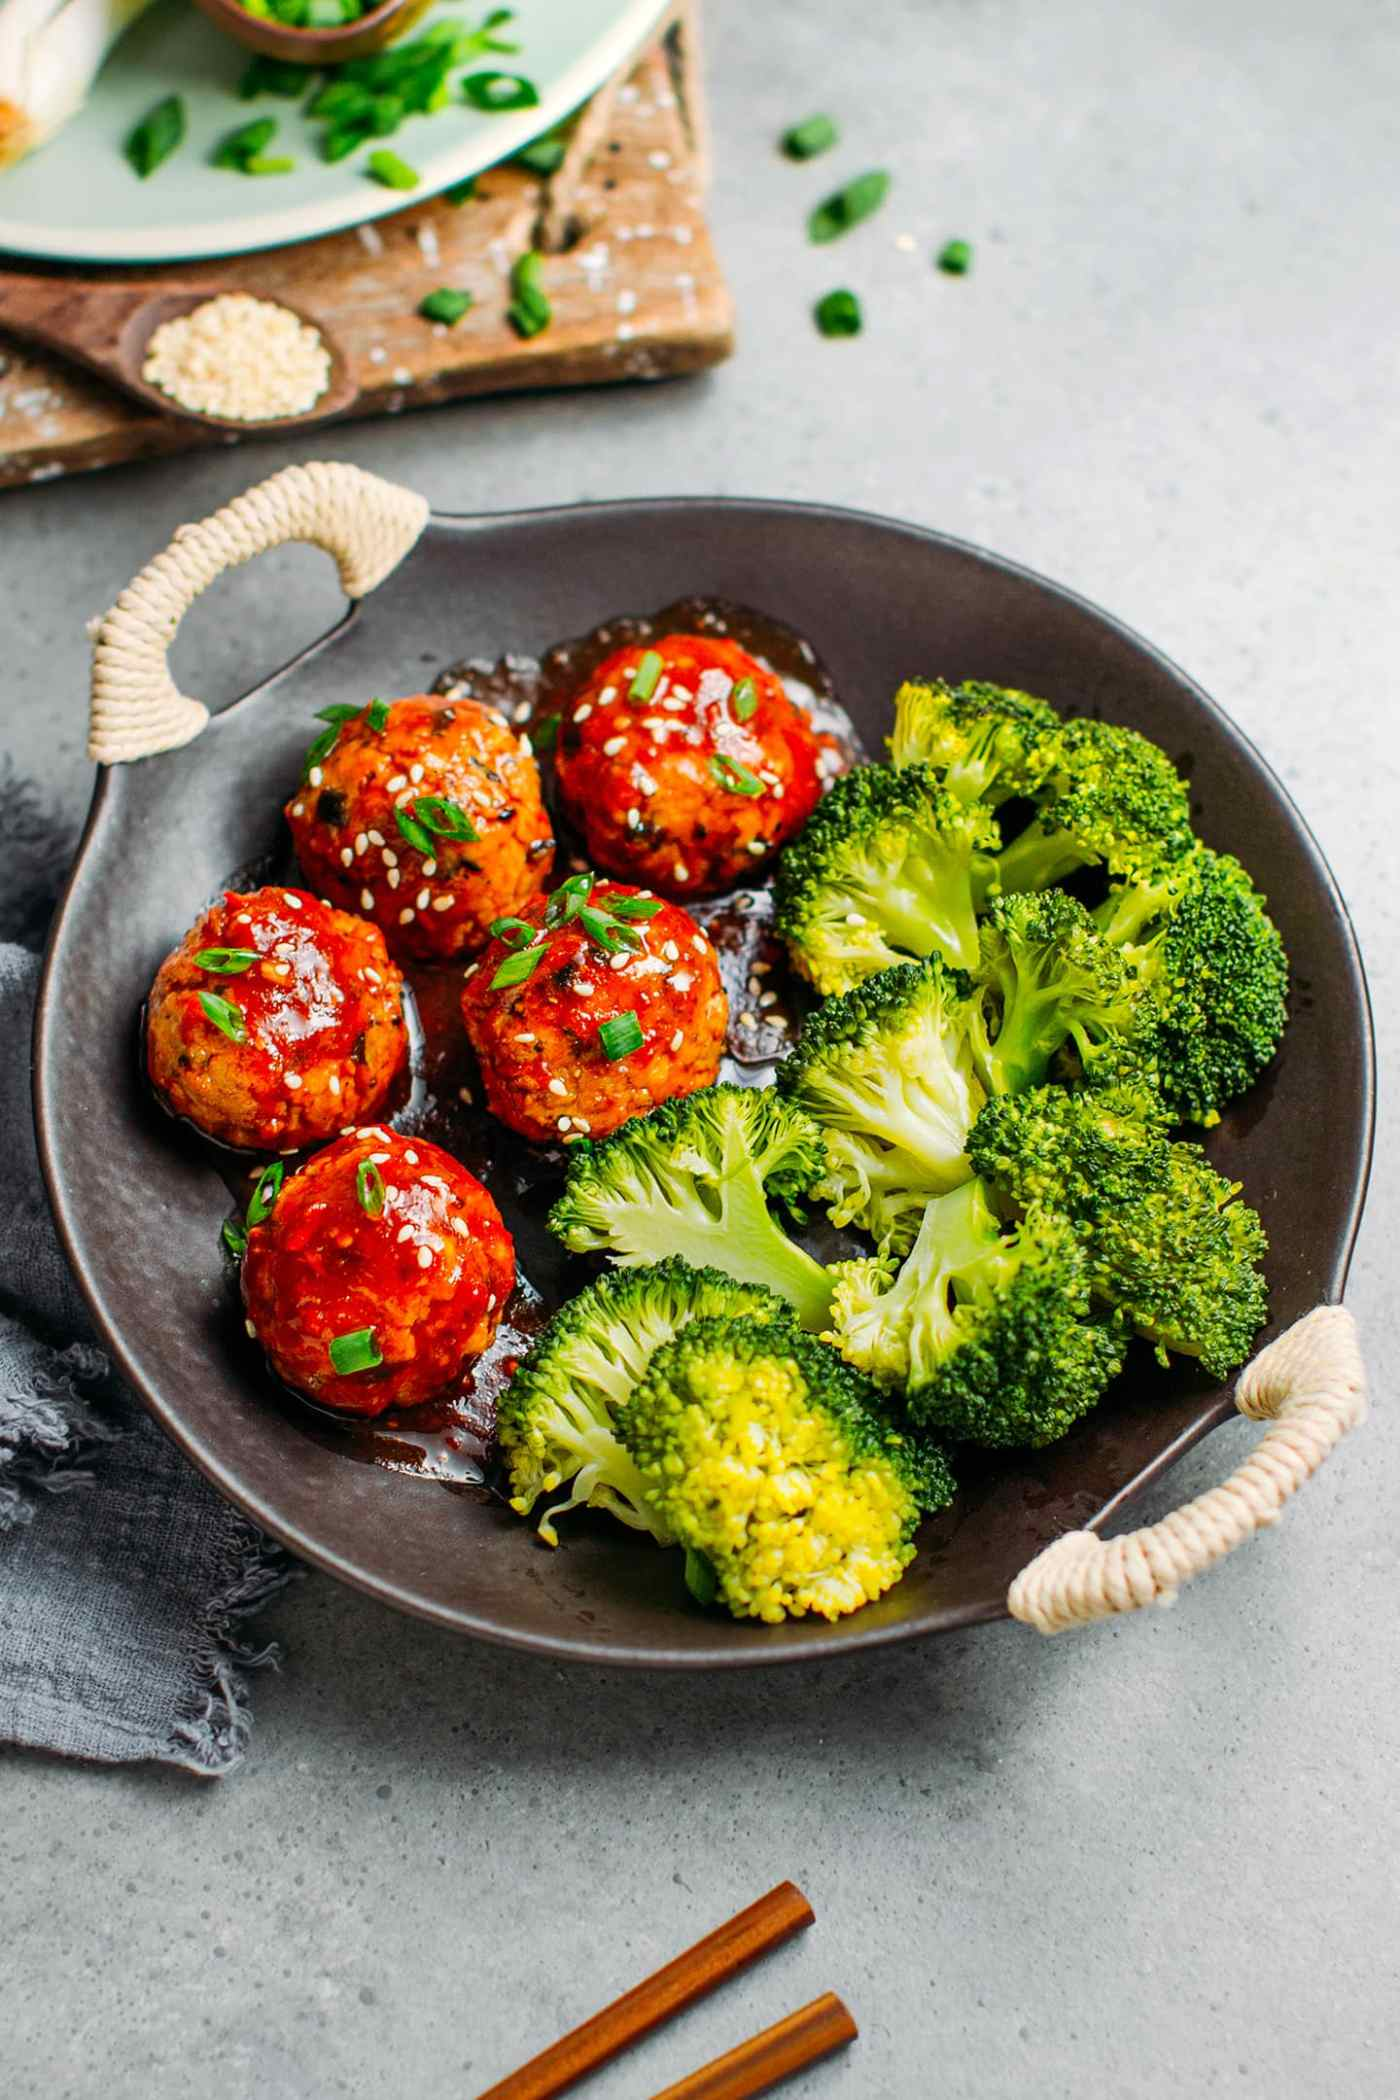 Tofu Balls with Sweet & Spicy Sauce